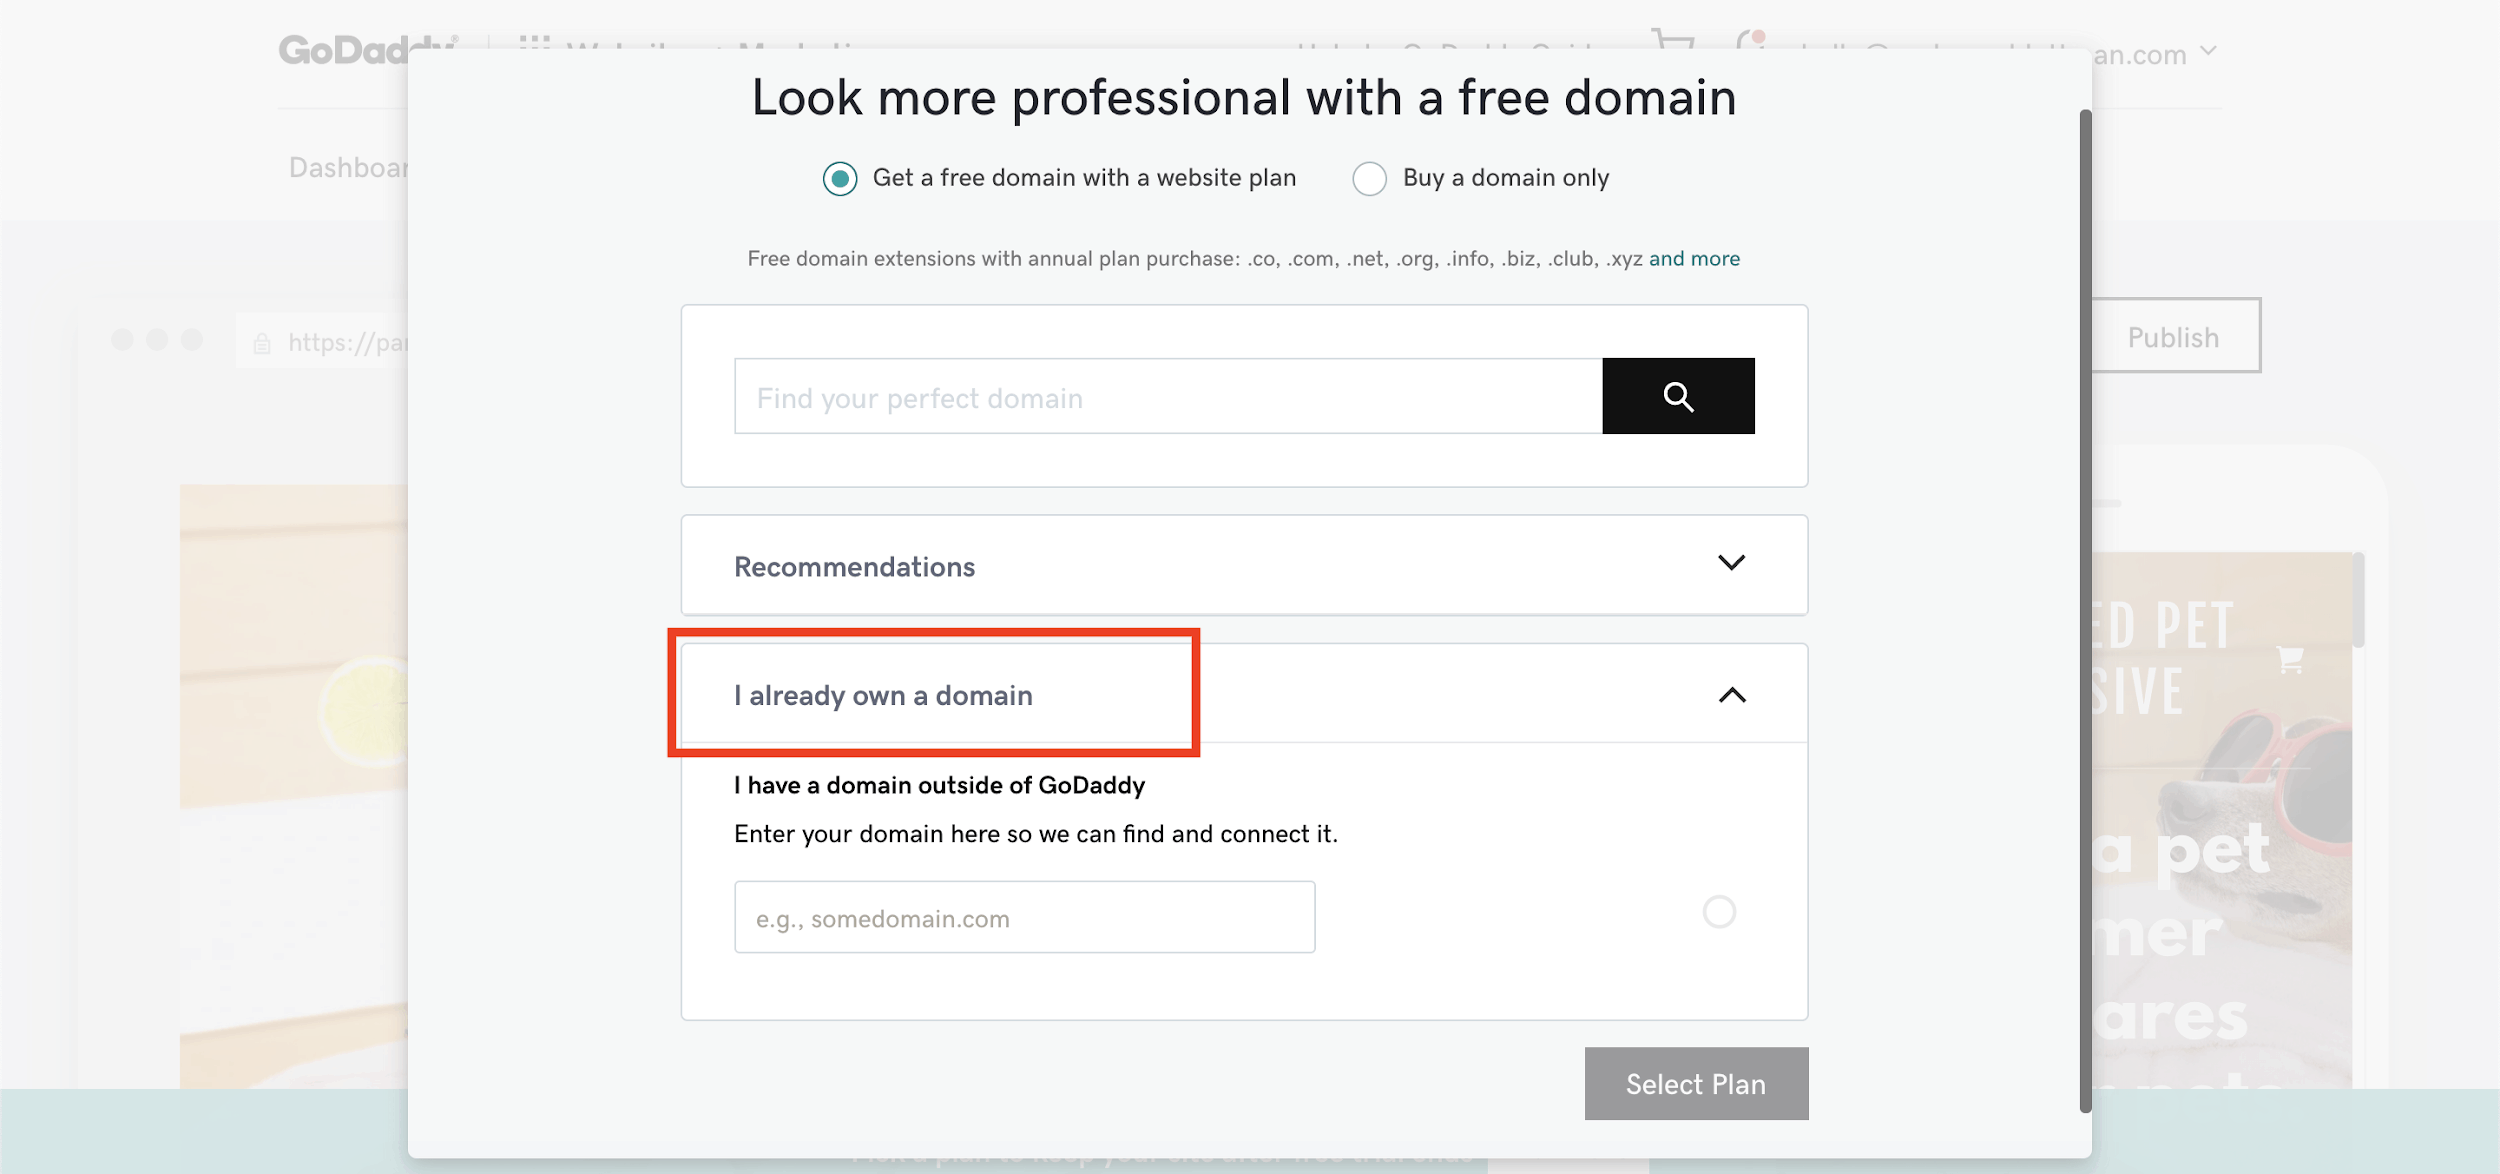 Connecting a domain to a GoDaddy website